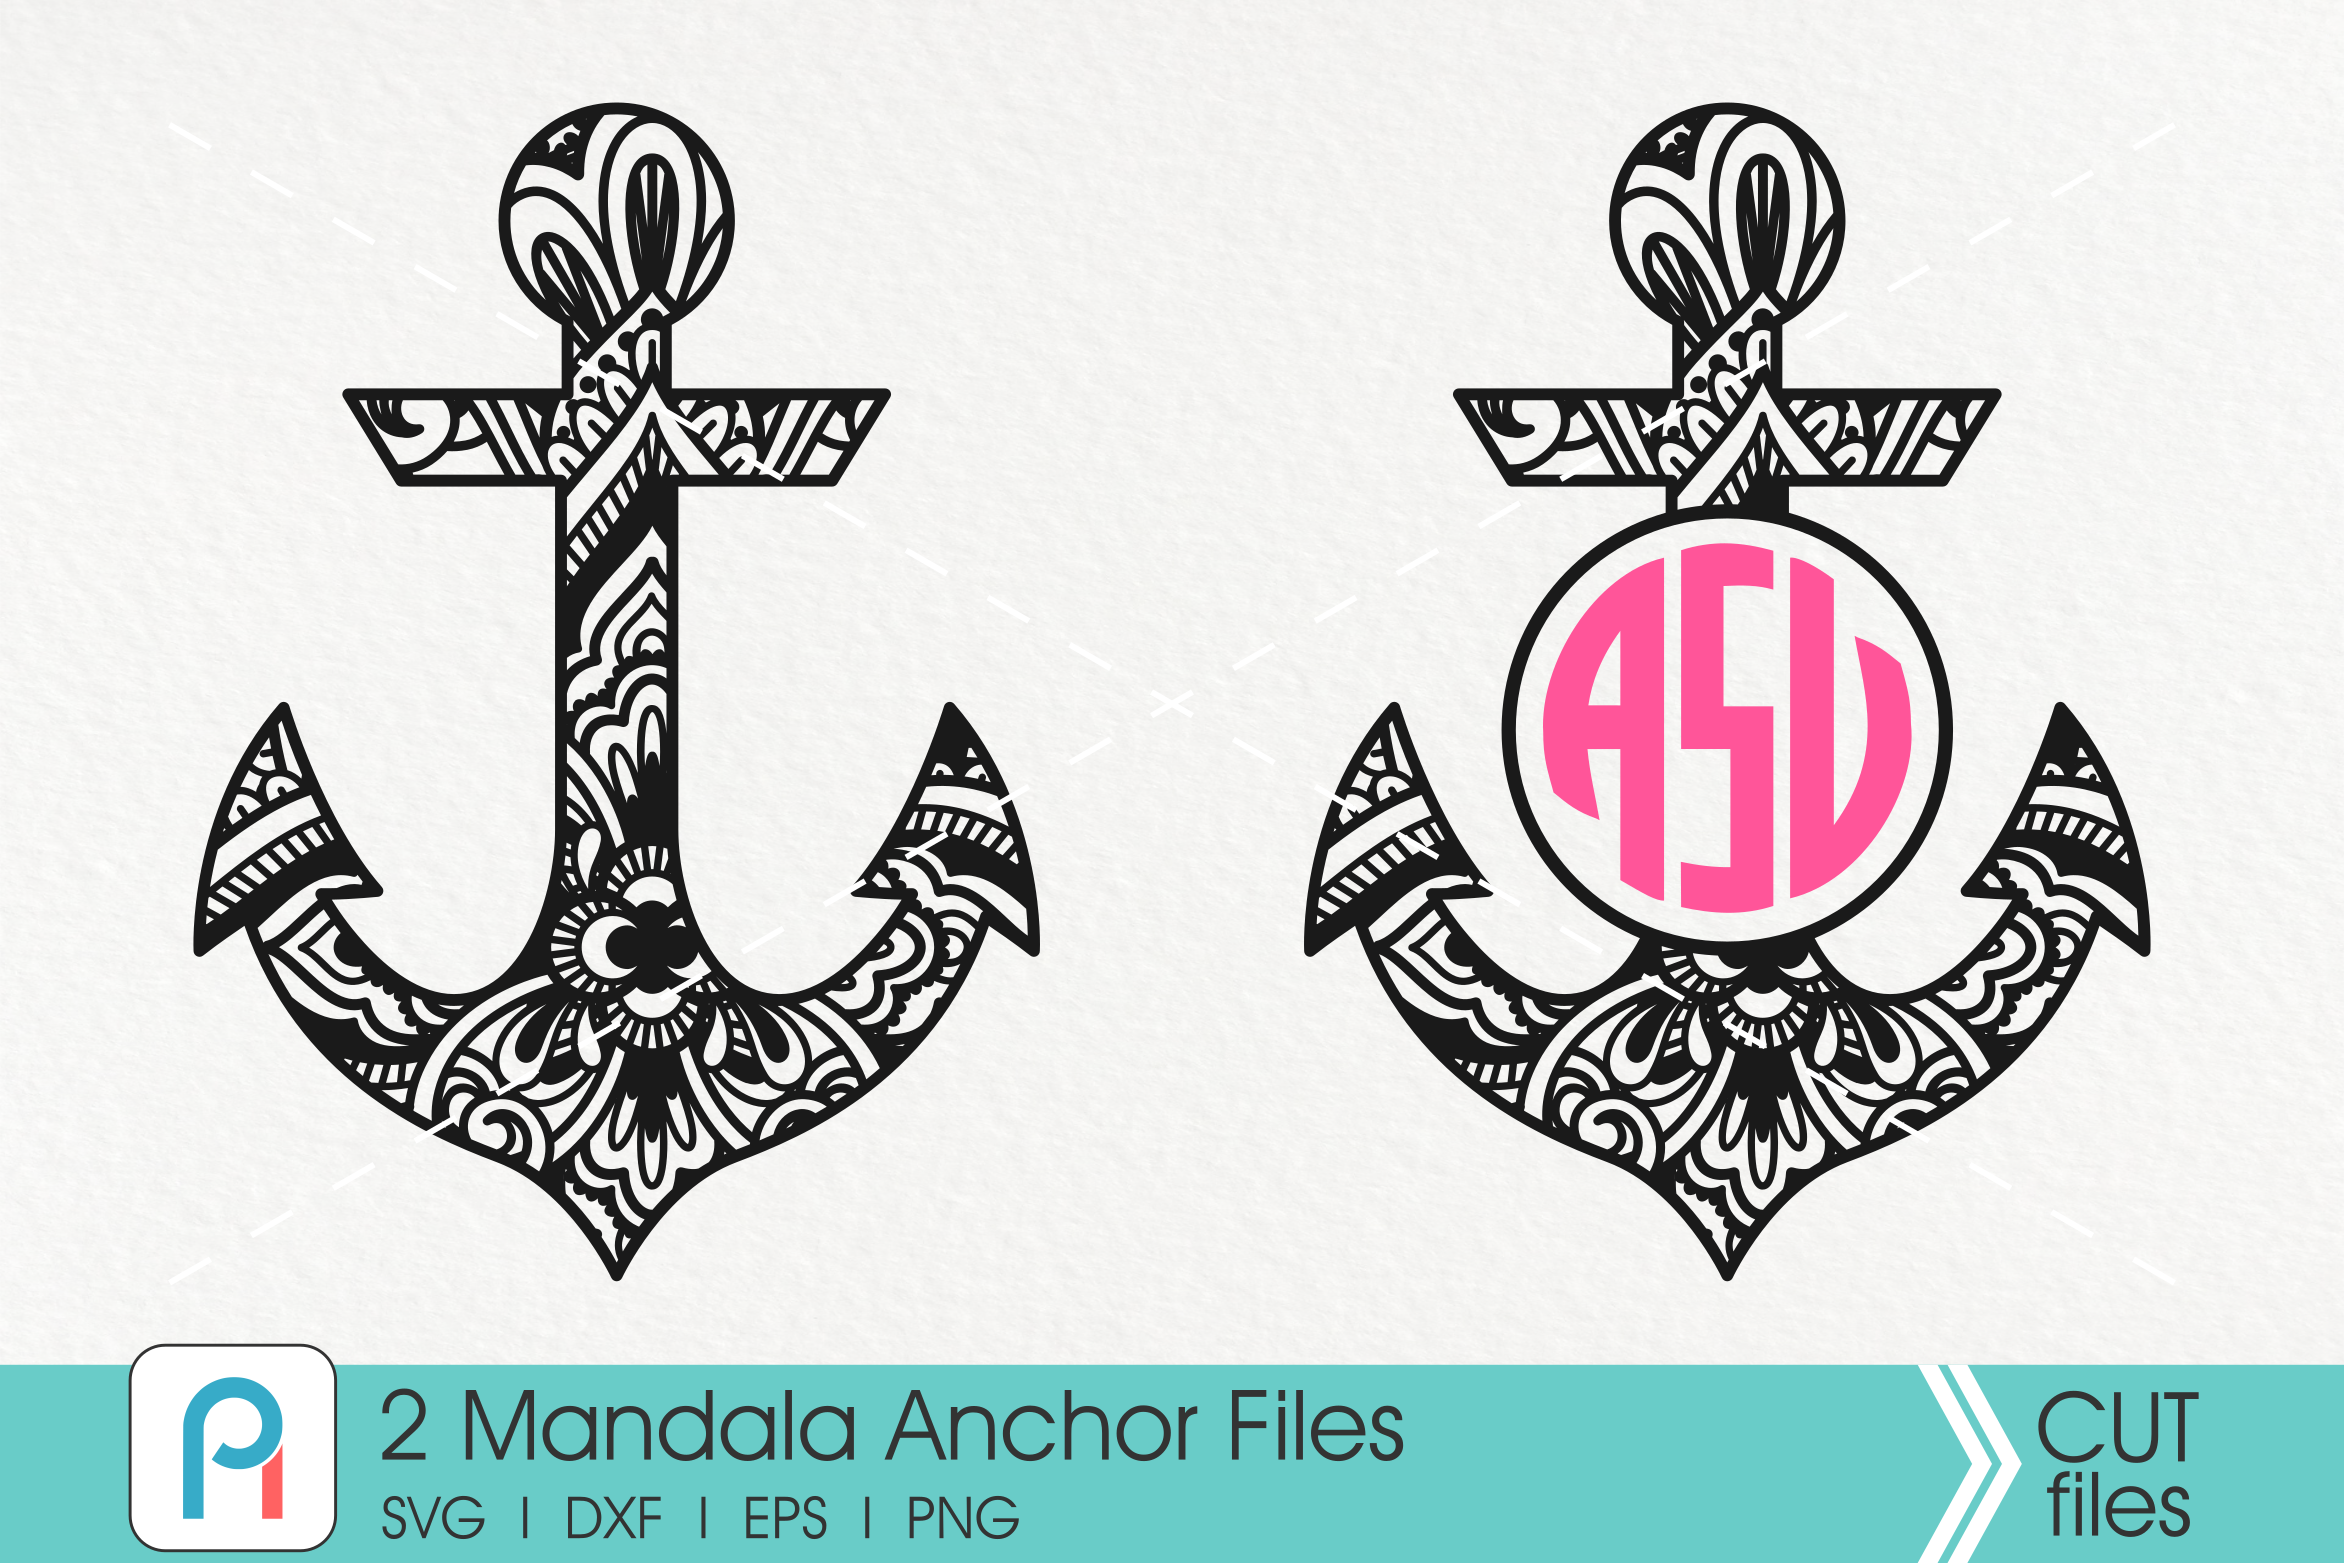 46+ Monogram Anchors, Svg, Dxf, Eps And Png Cut Files DXF